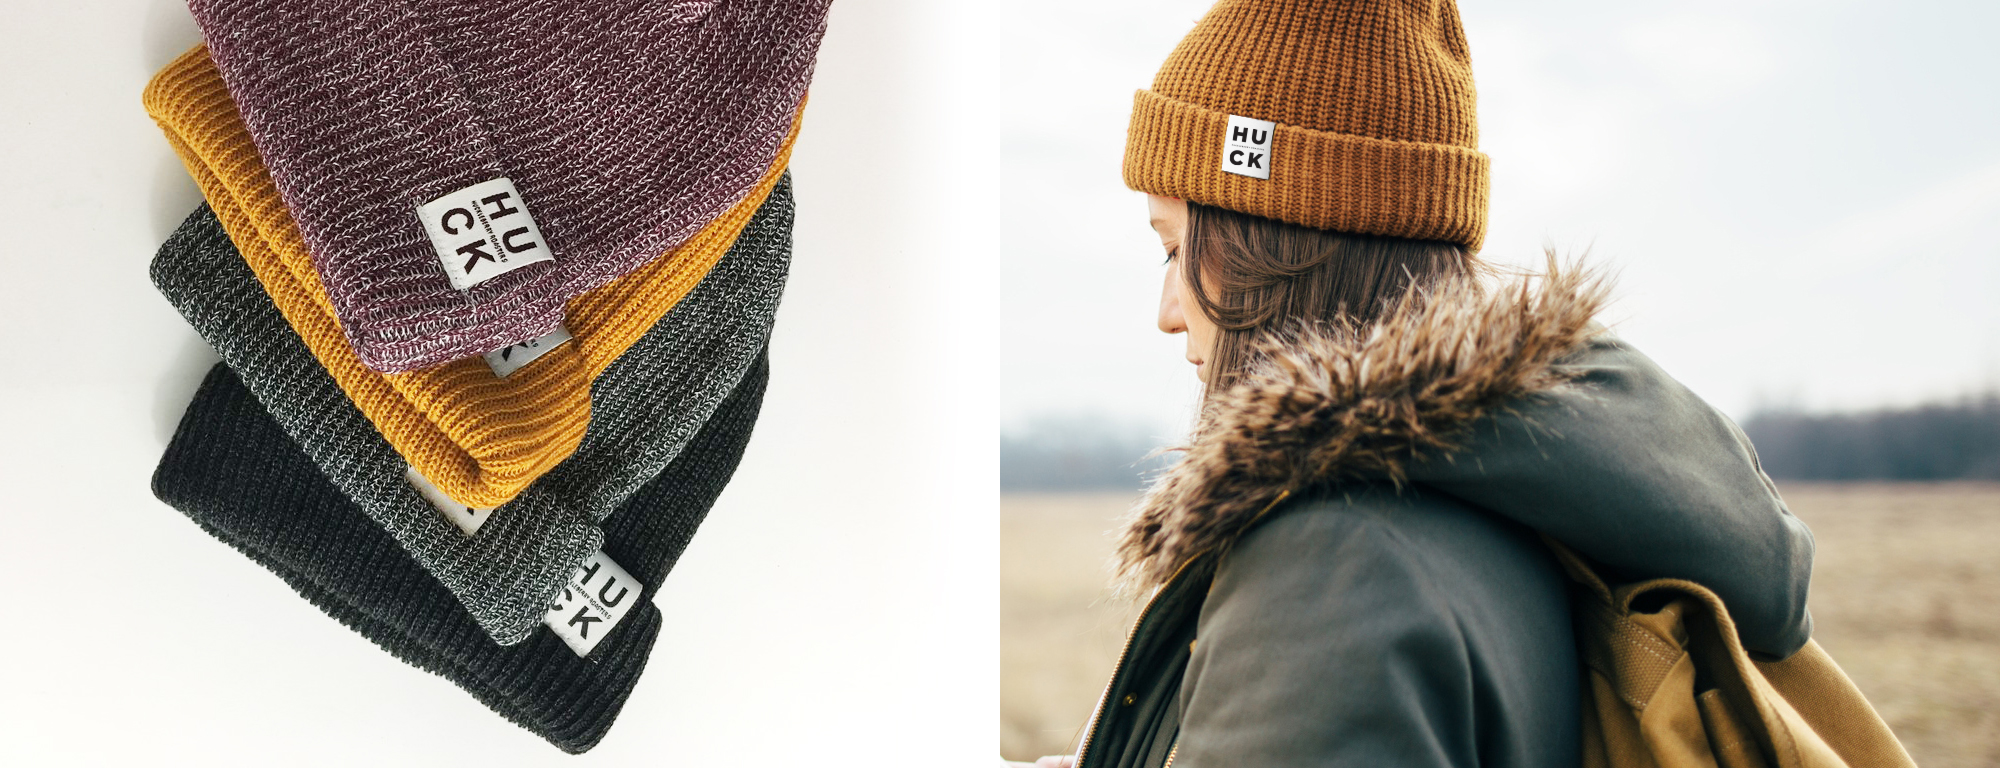 huckleberry-roasters-design-logo-beanies.jpg